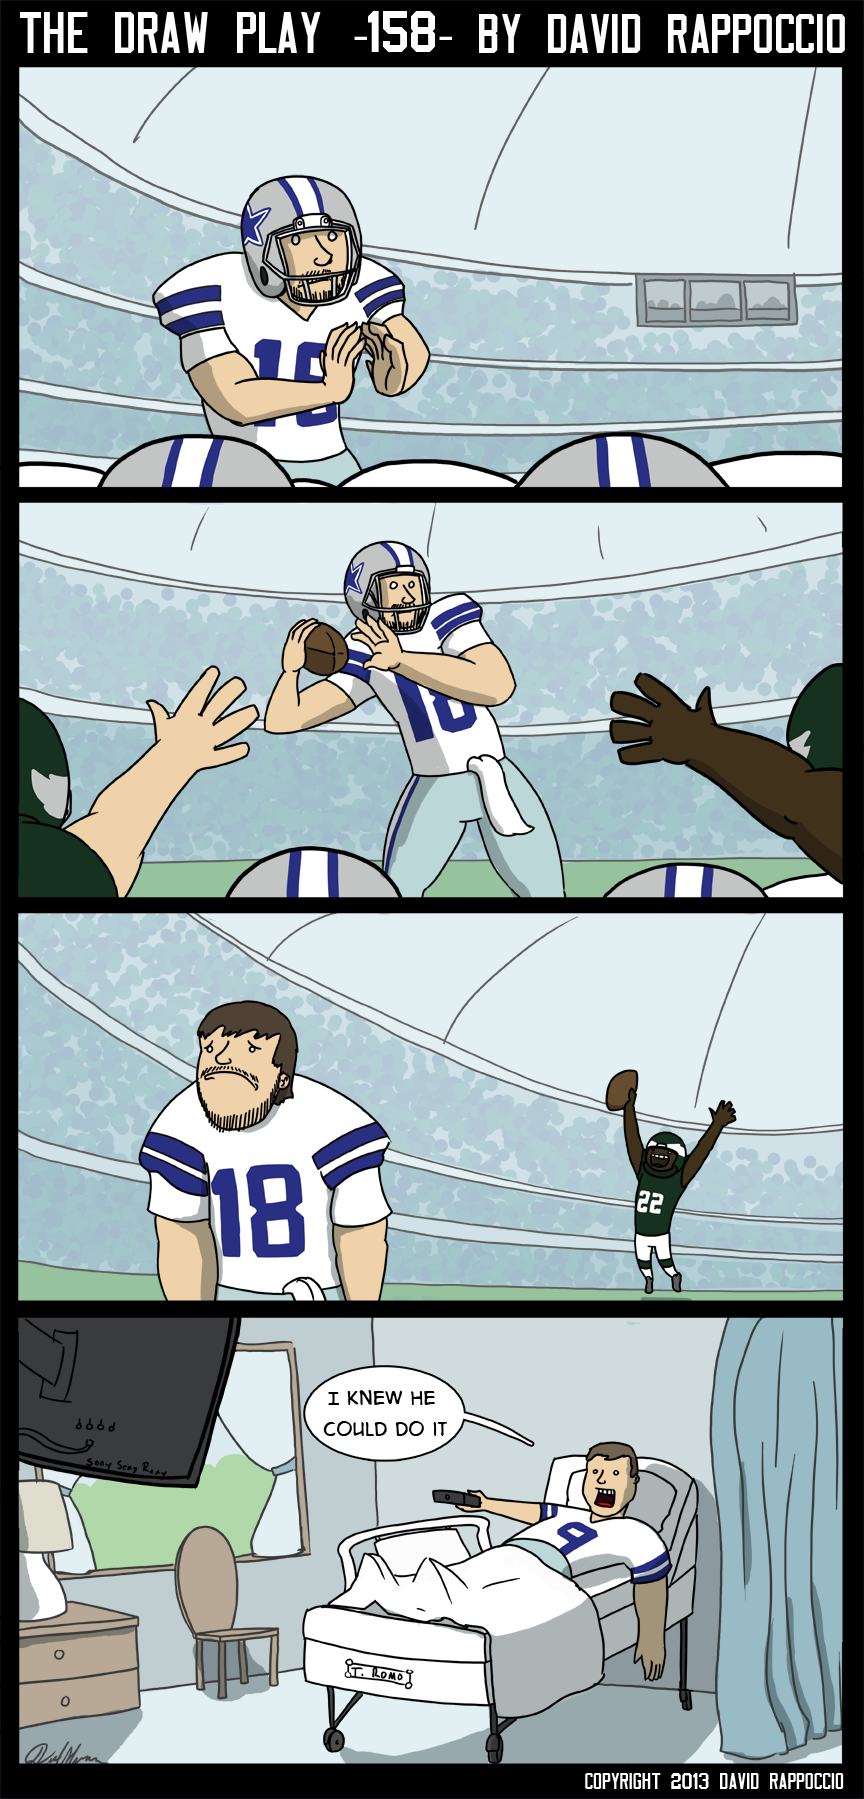 WAY TO FAIL ROMO! oh wait